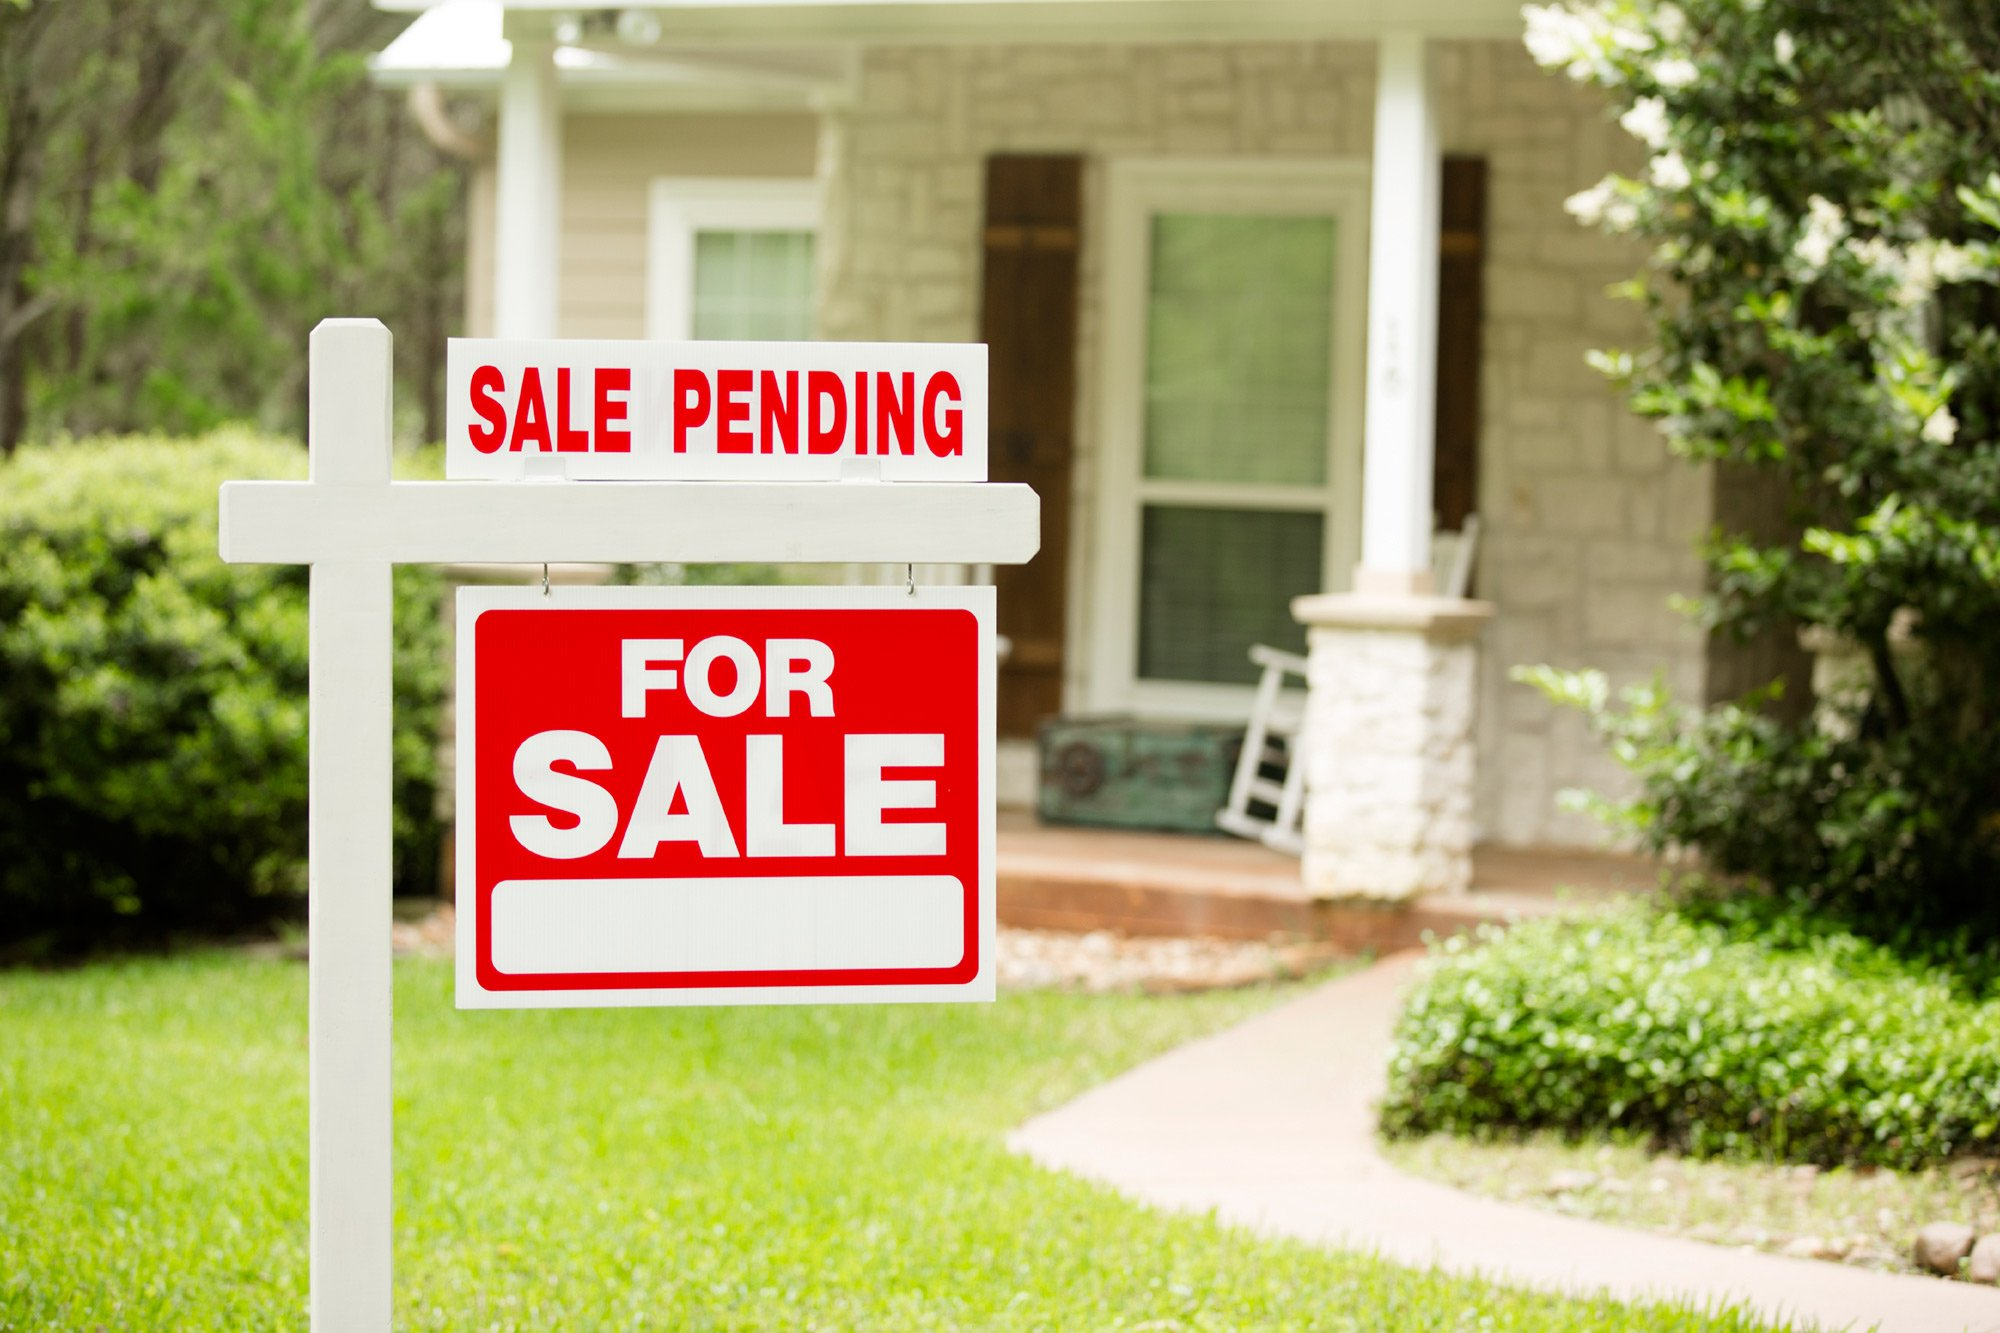 The Data Comes From The Nar's Latest Pending Home Sales Index, Which Is A  Forward Looking Indicator Of Housing Activity Based On Contract Signings.